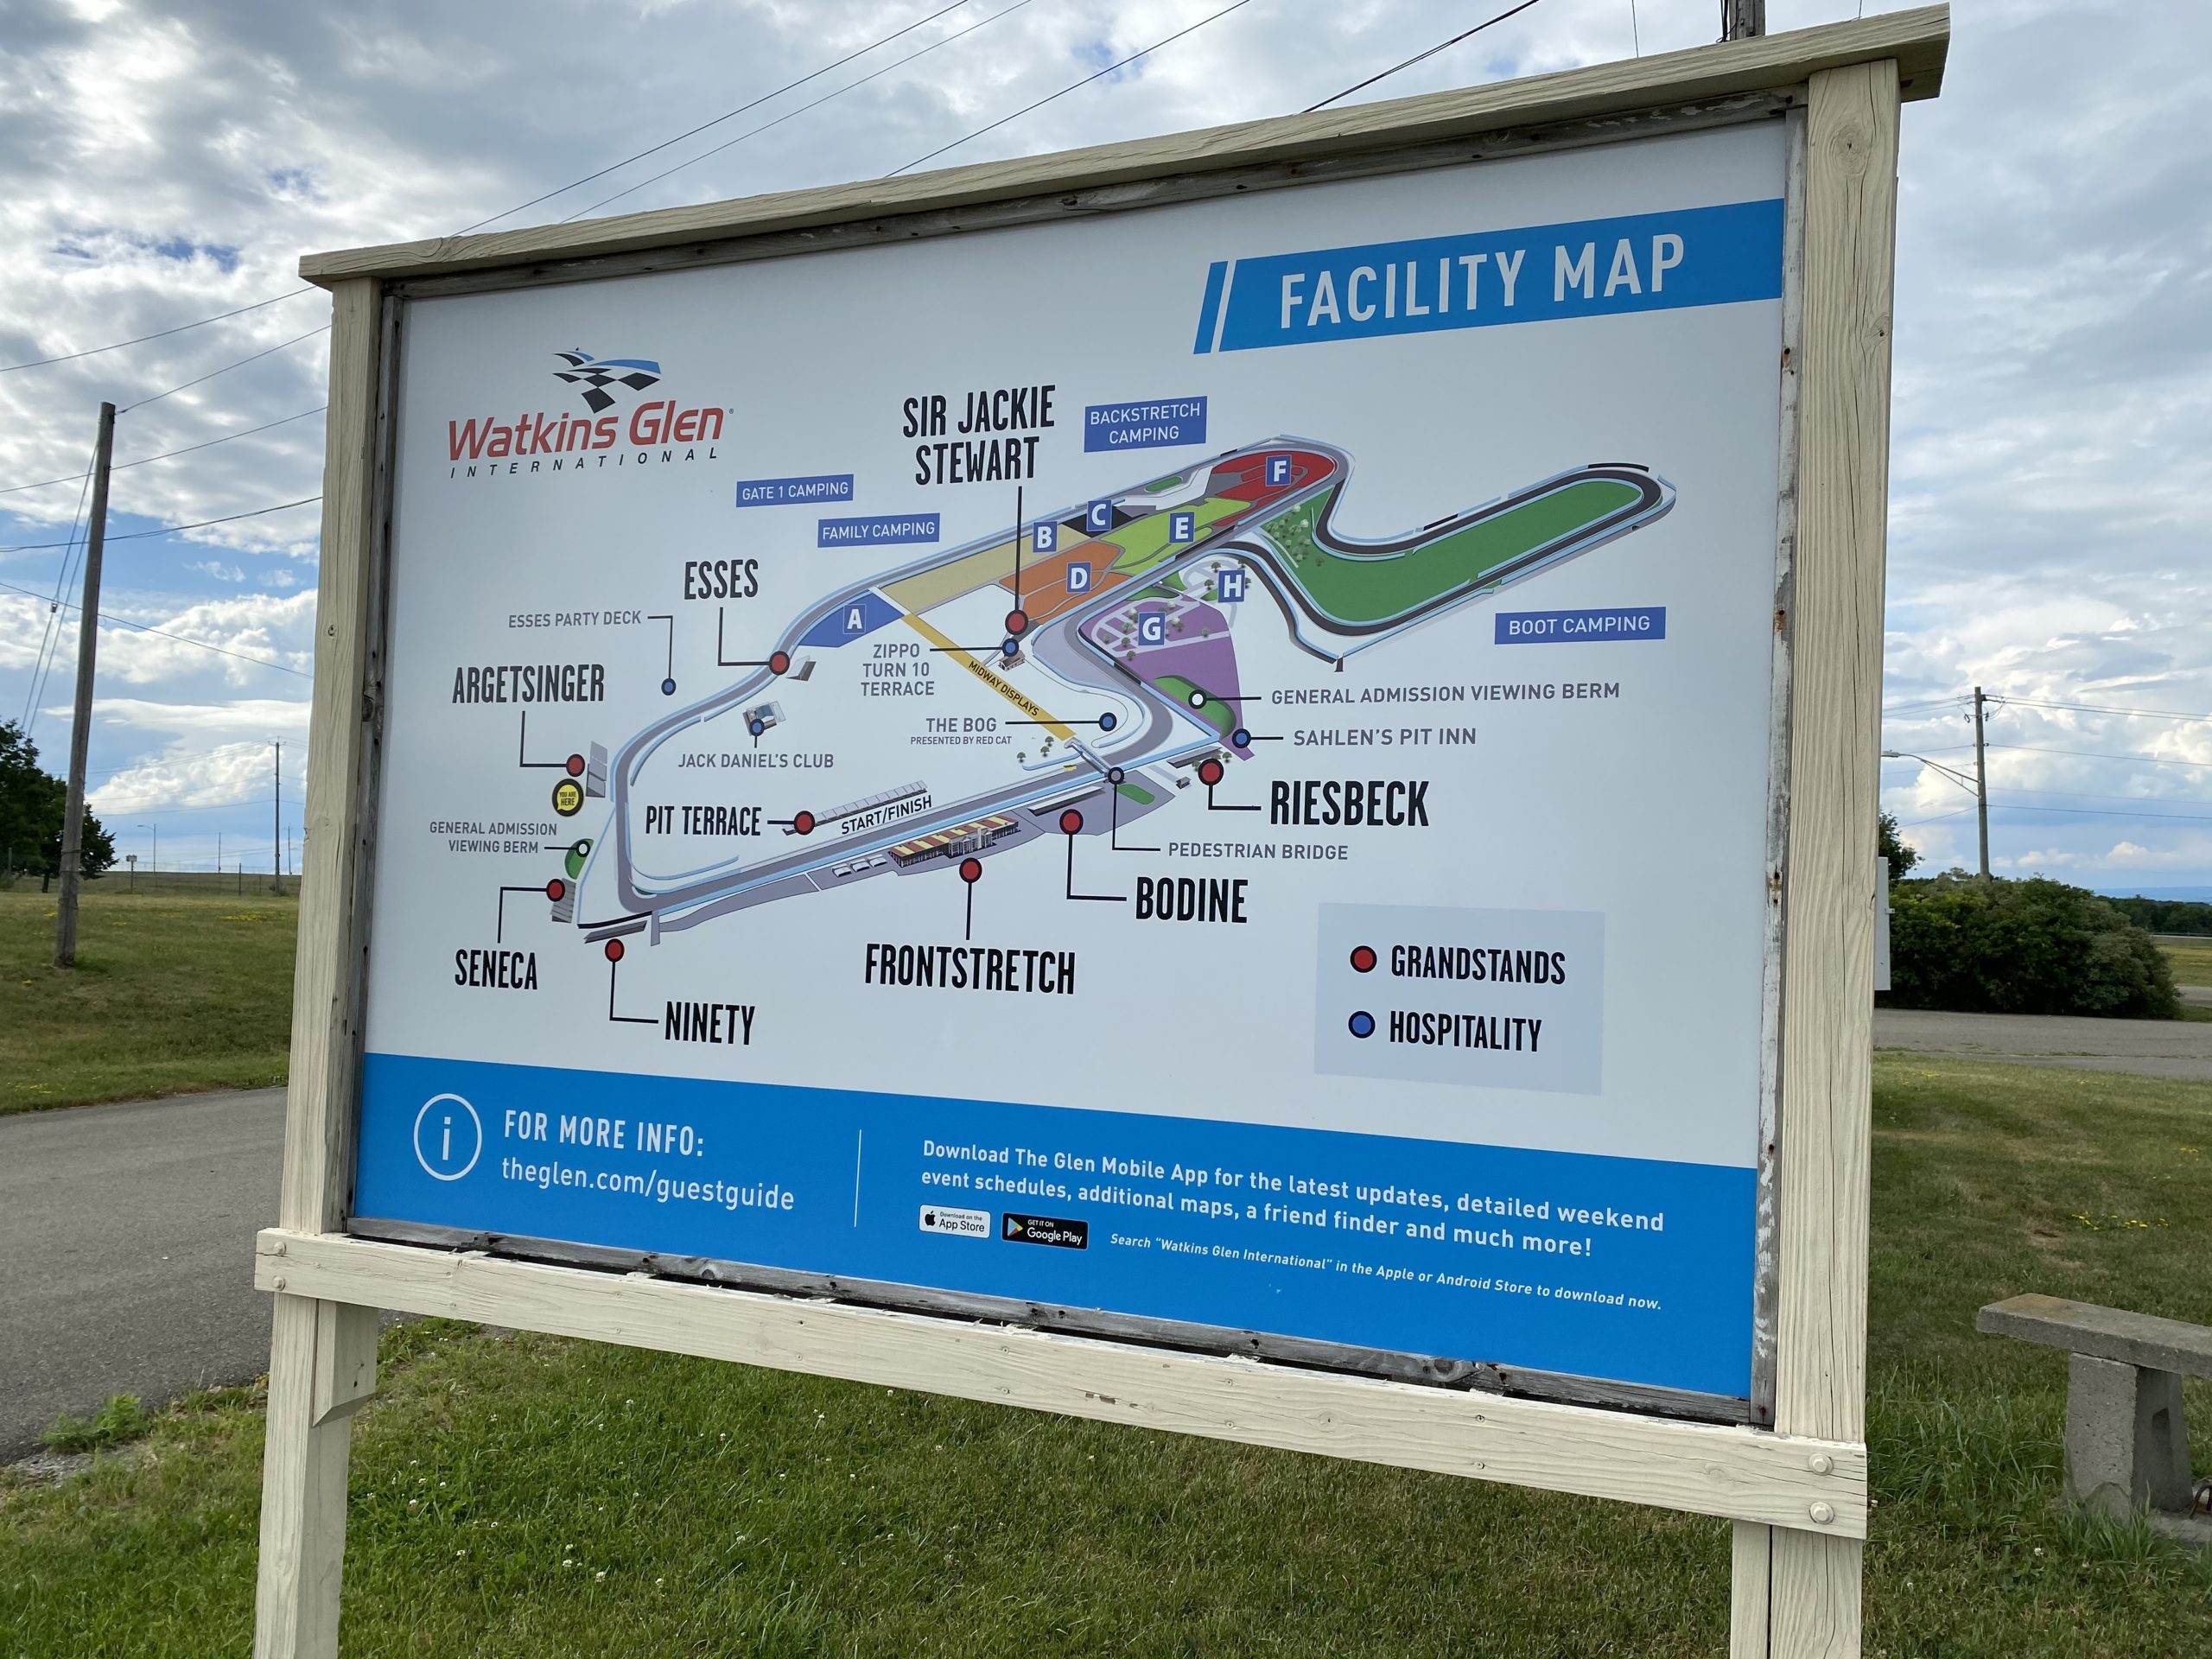 Facility map at the Watkins Glen Internation Speedway